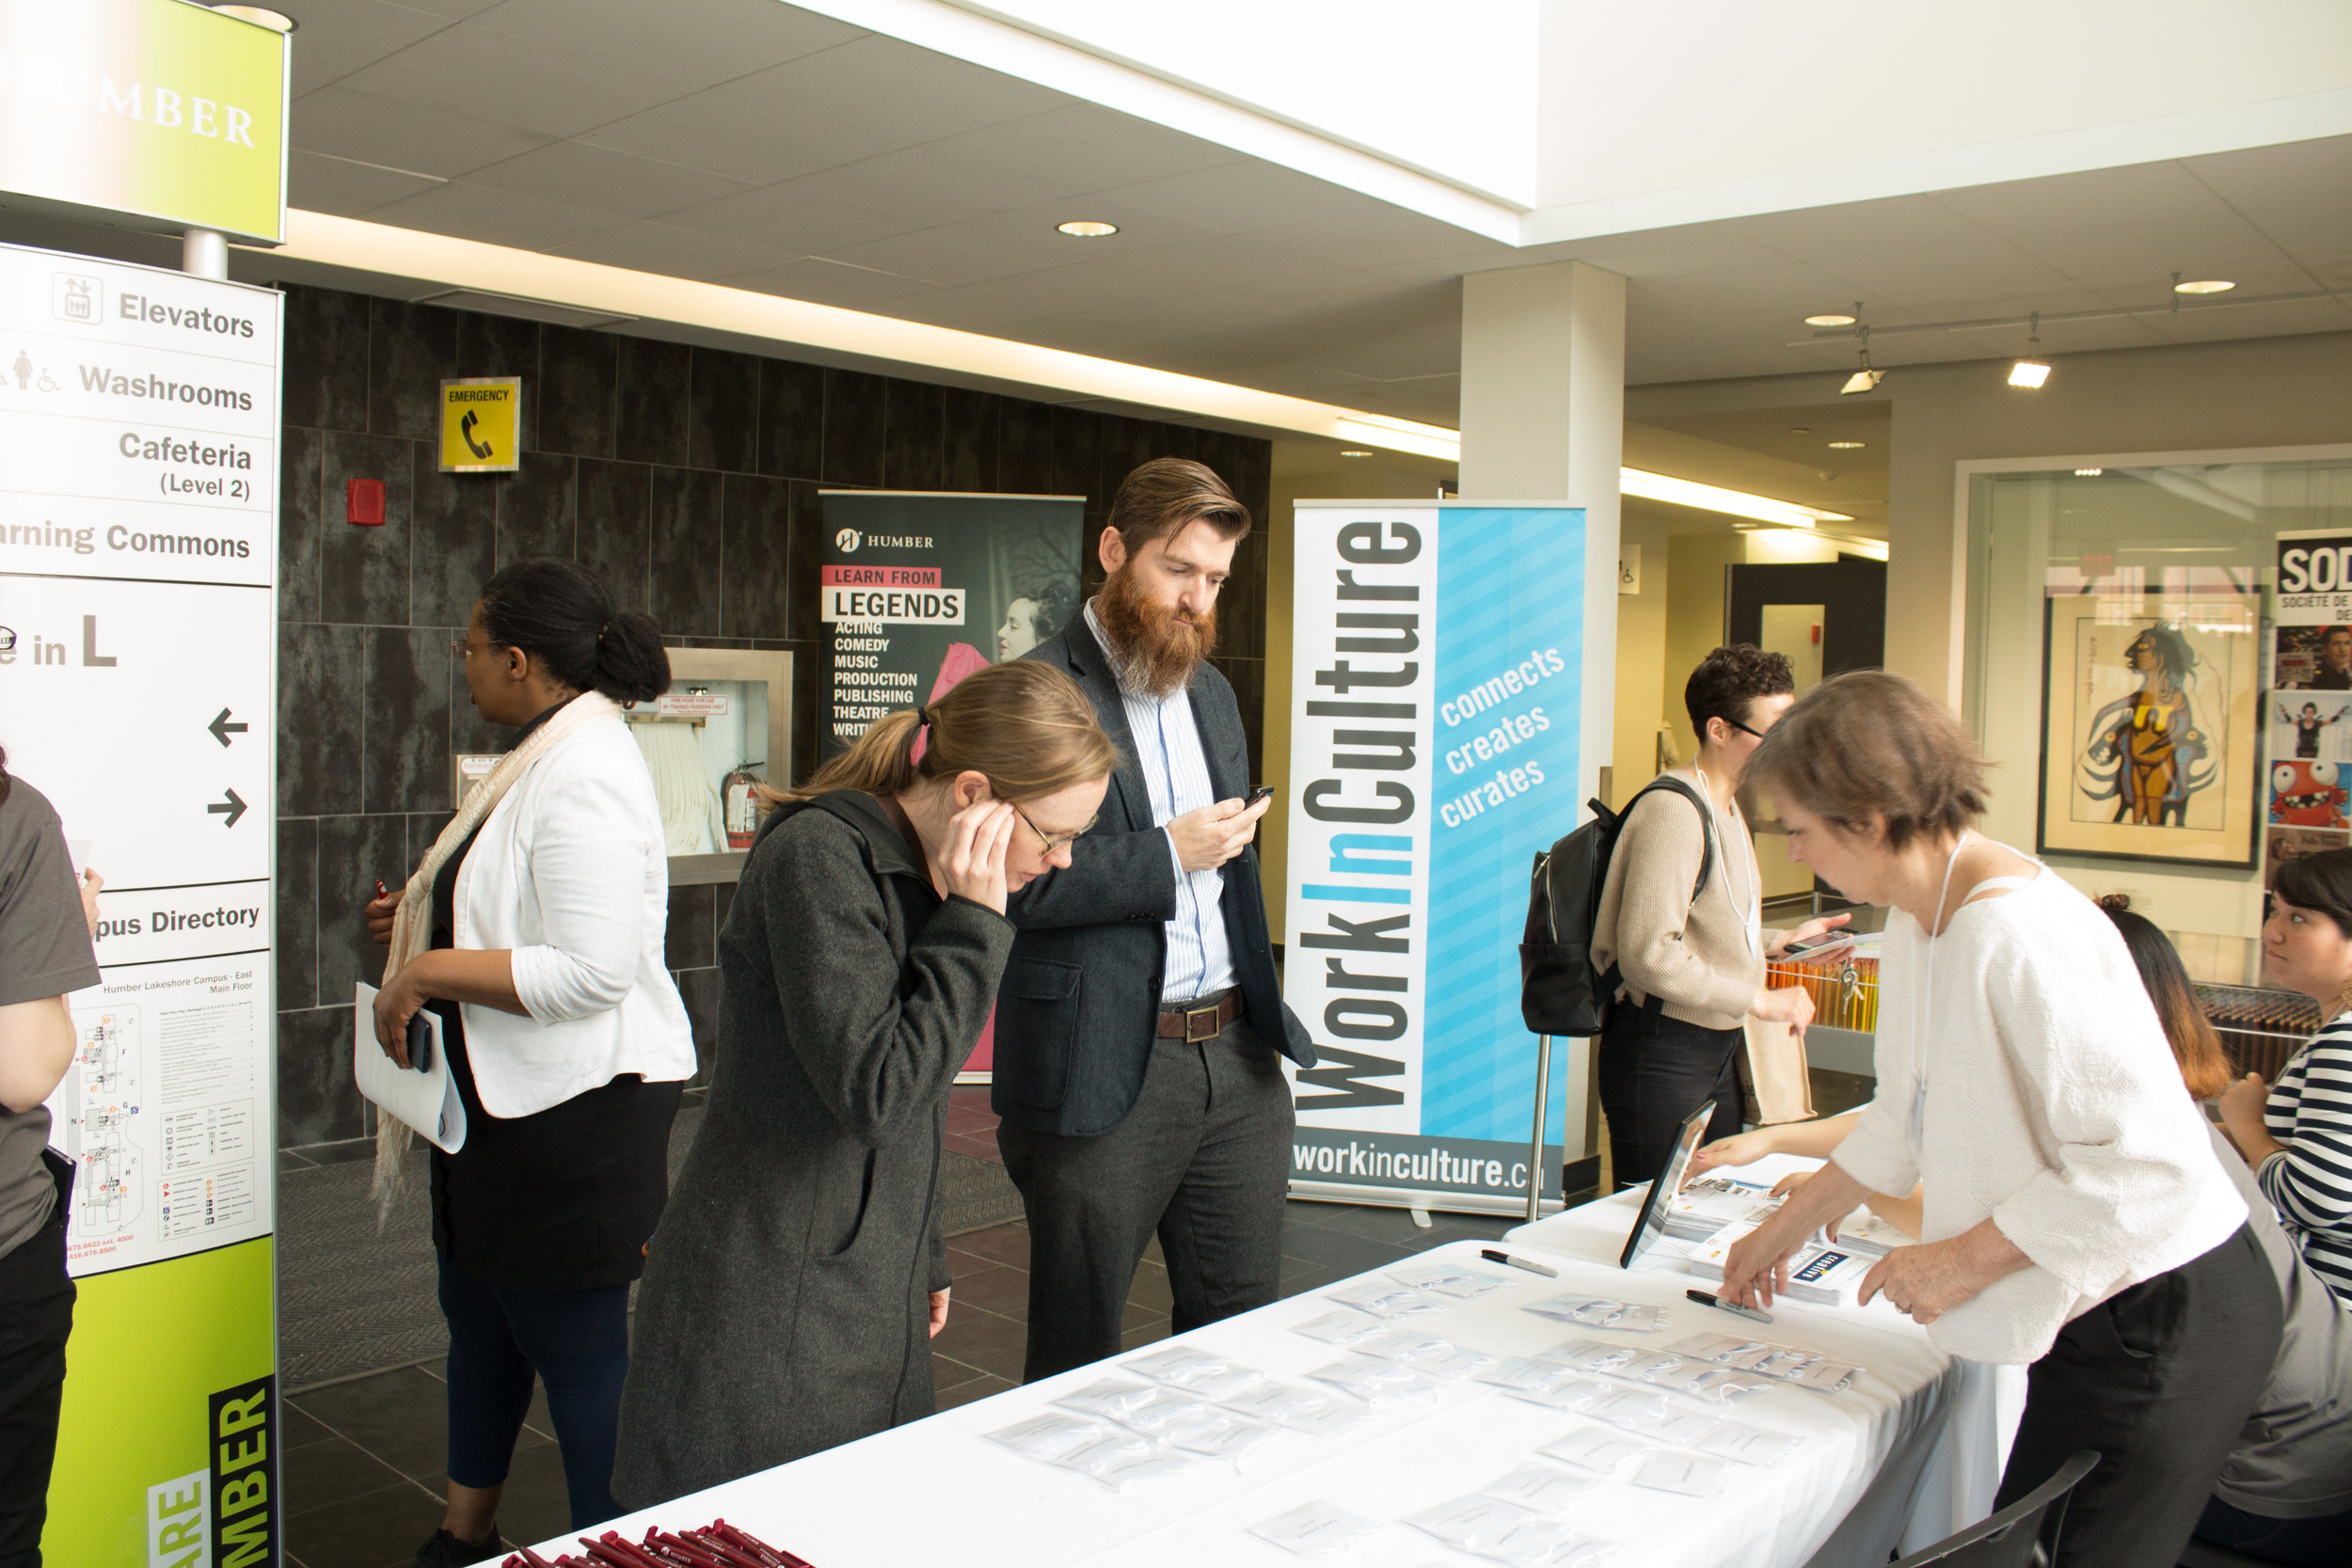 - The first Creative Works conference on May 12, 2017, was held at the Humber College Lakeshore Campus. The full-day conference was an opportunity for new and experienced cultural leaders, to explore topics through three general streams: Money and Models, Innovating Work/Space and Leading for the Future.